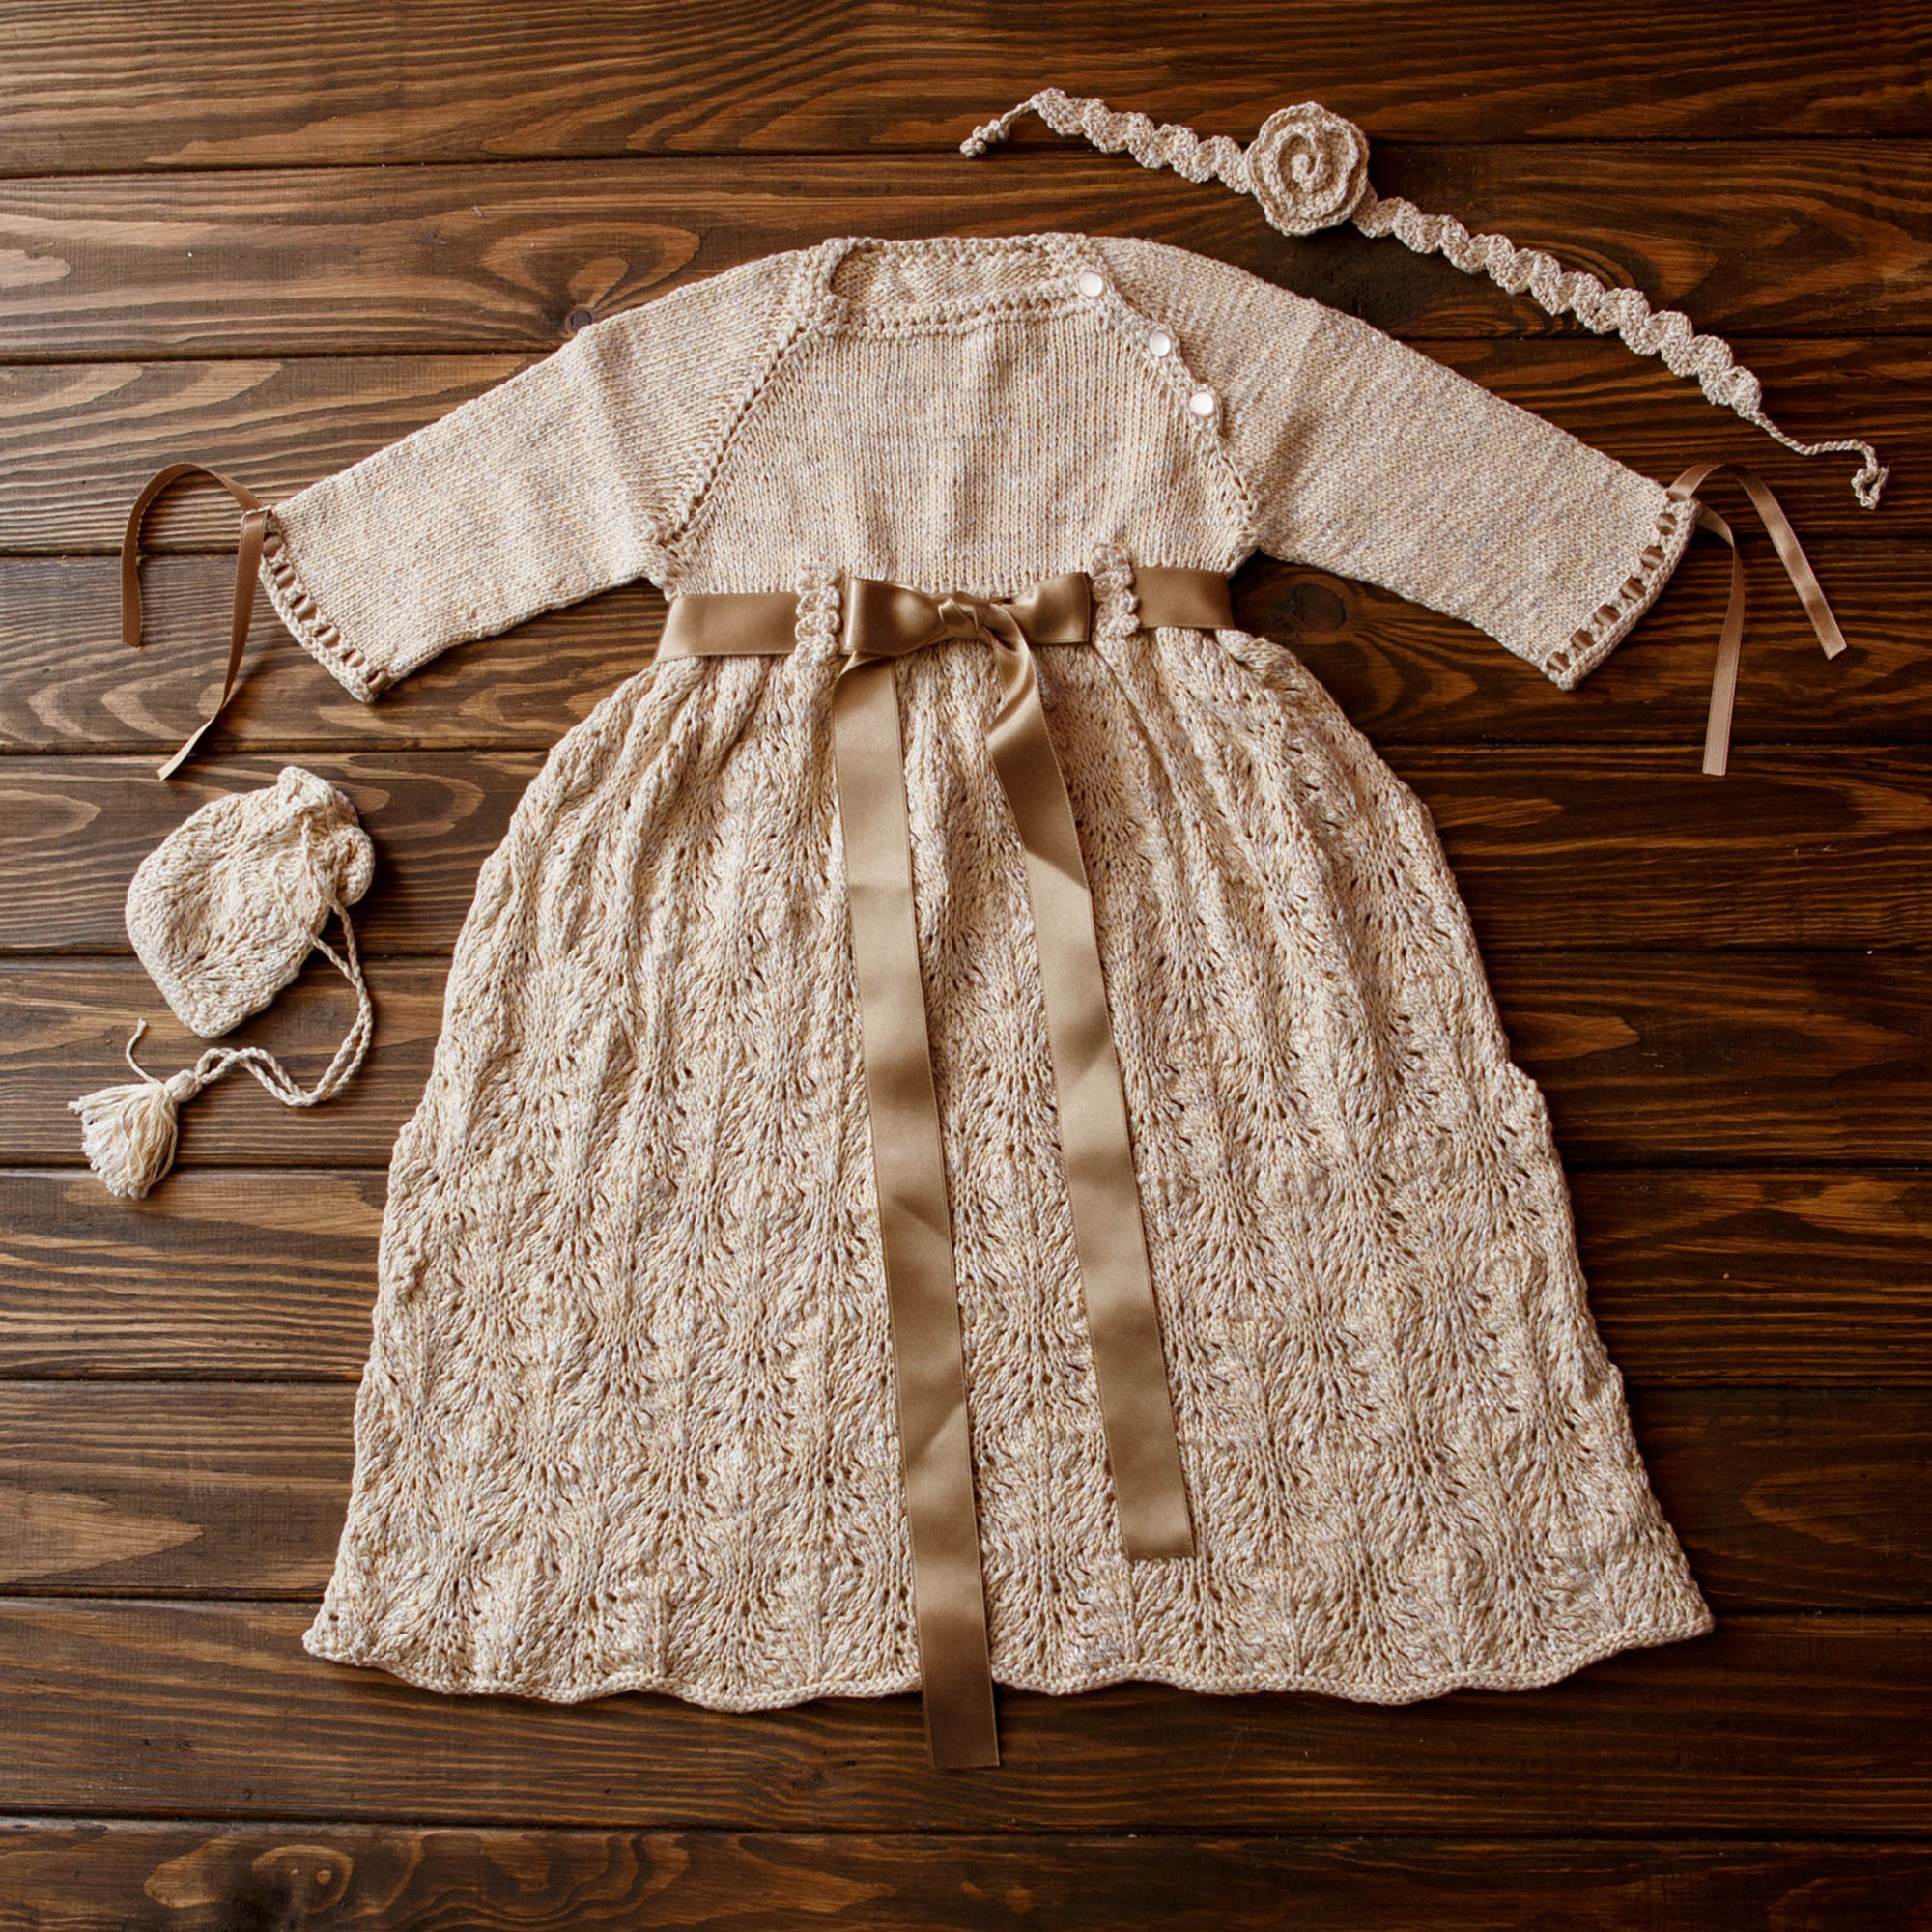 Hand Knitted Baby Girl Christening Dress, 6-9 months, 63-74cm